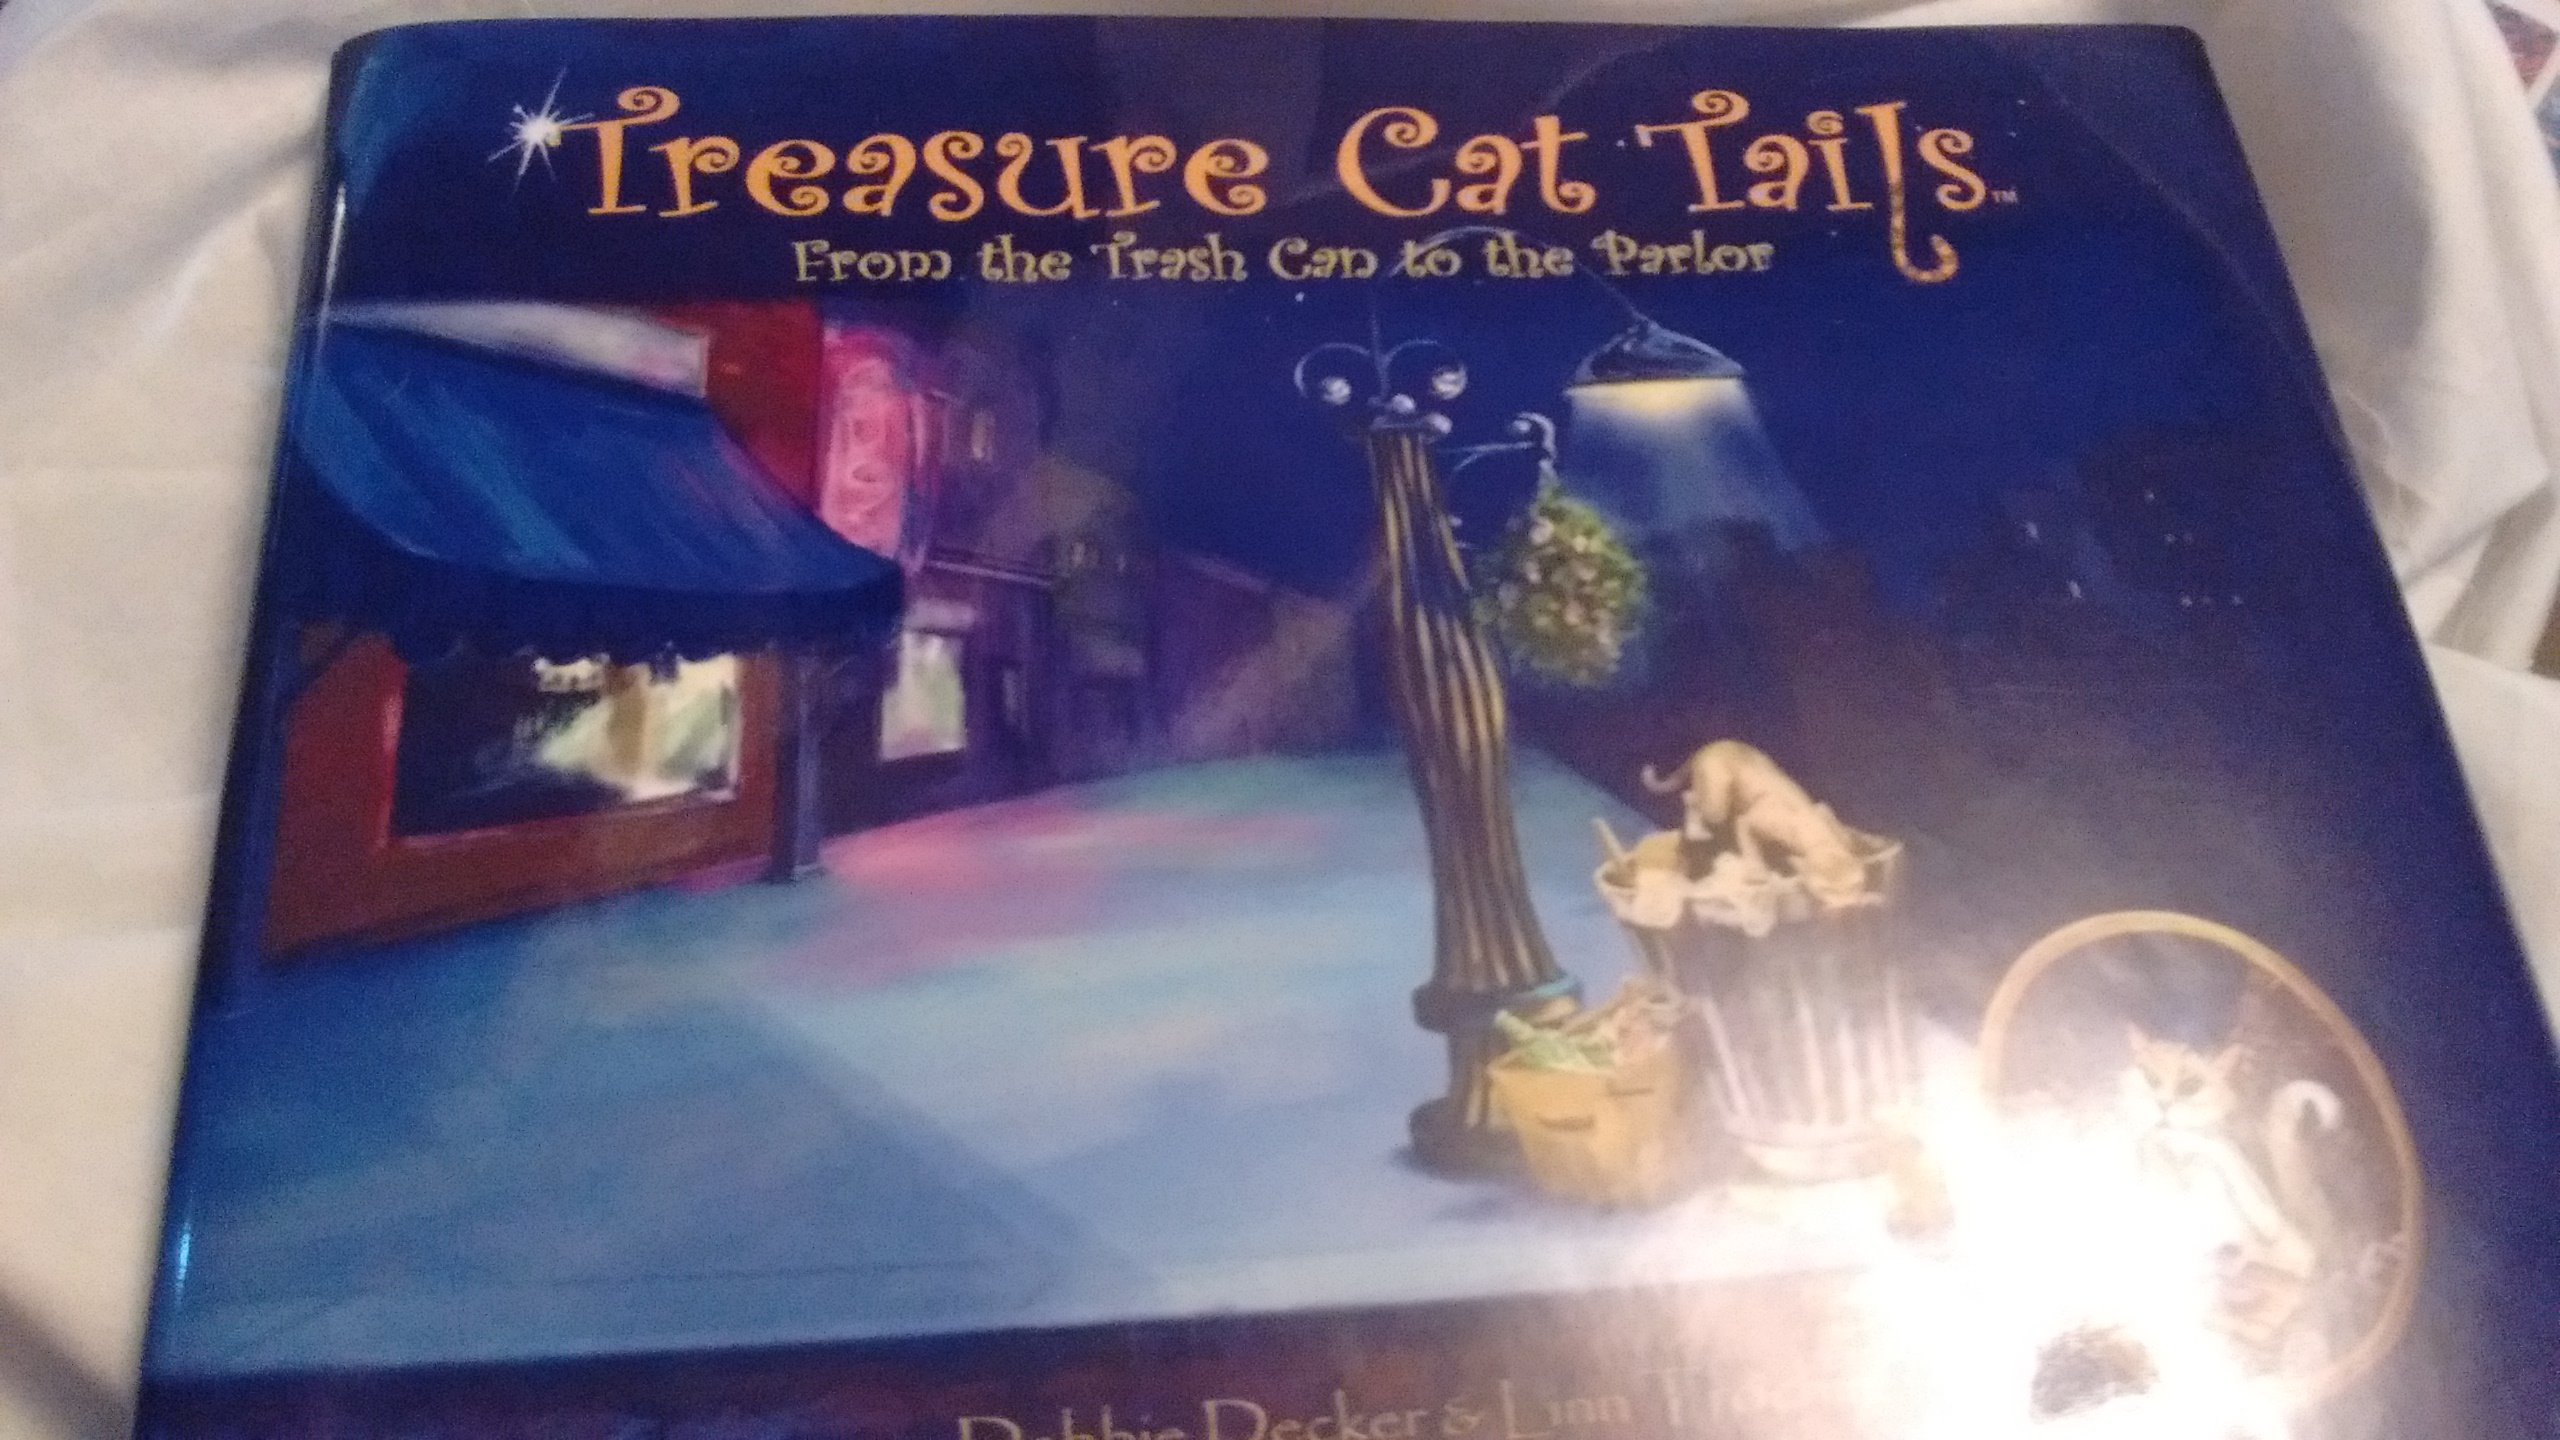 Treasure Cat Tails: From the Trash Can to the Parlor